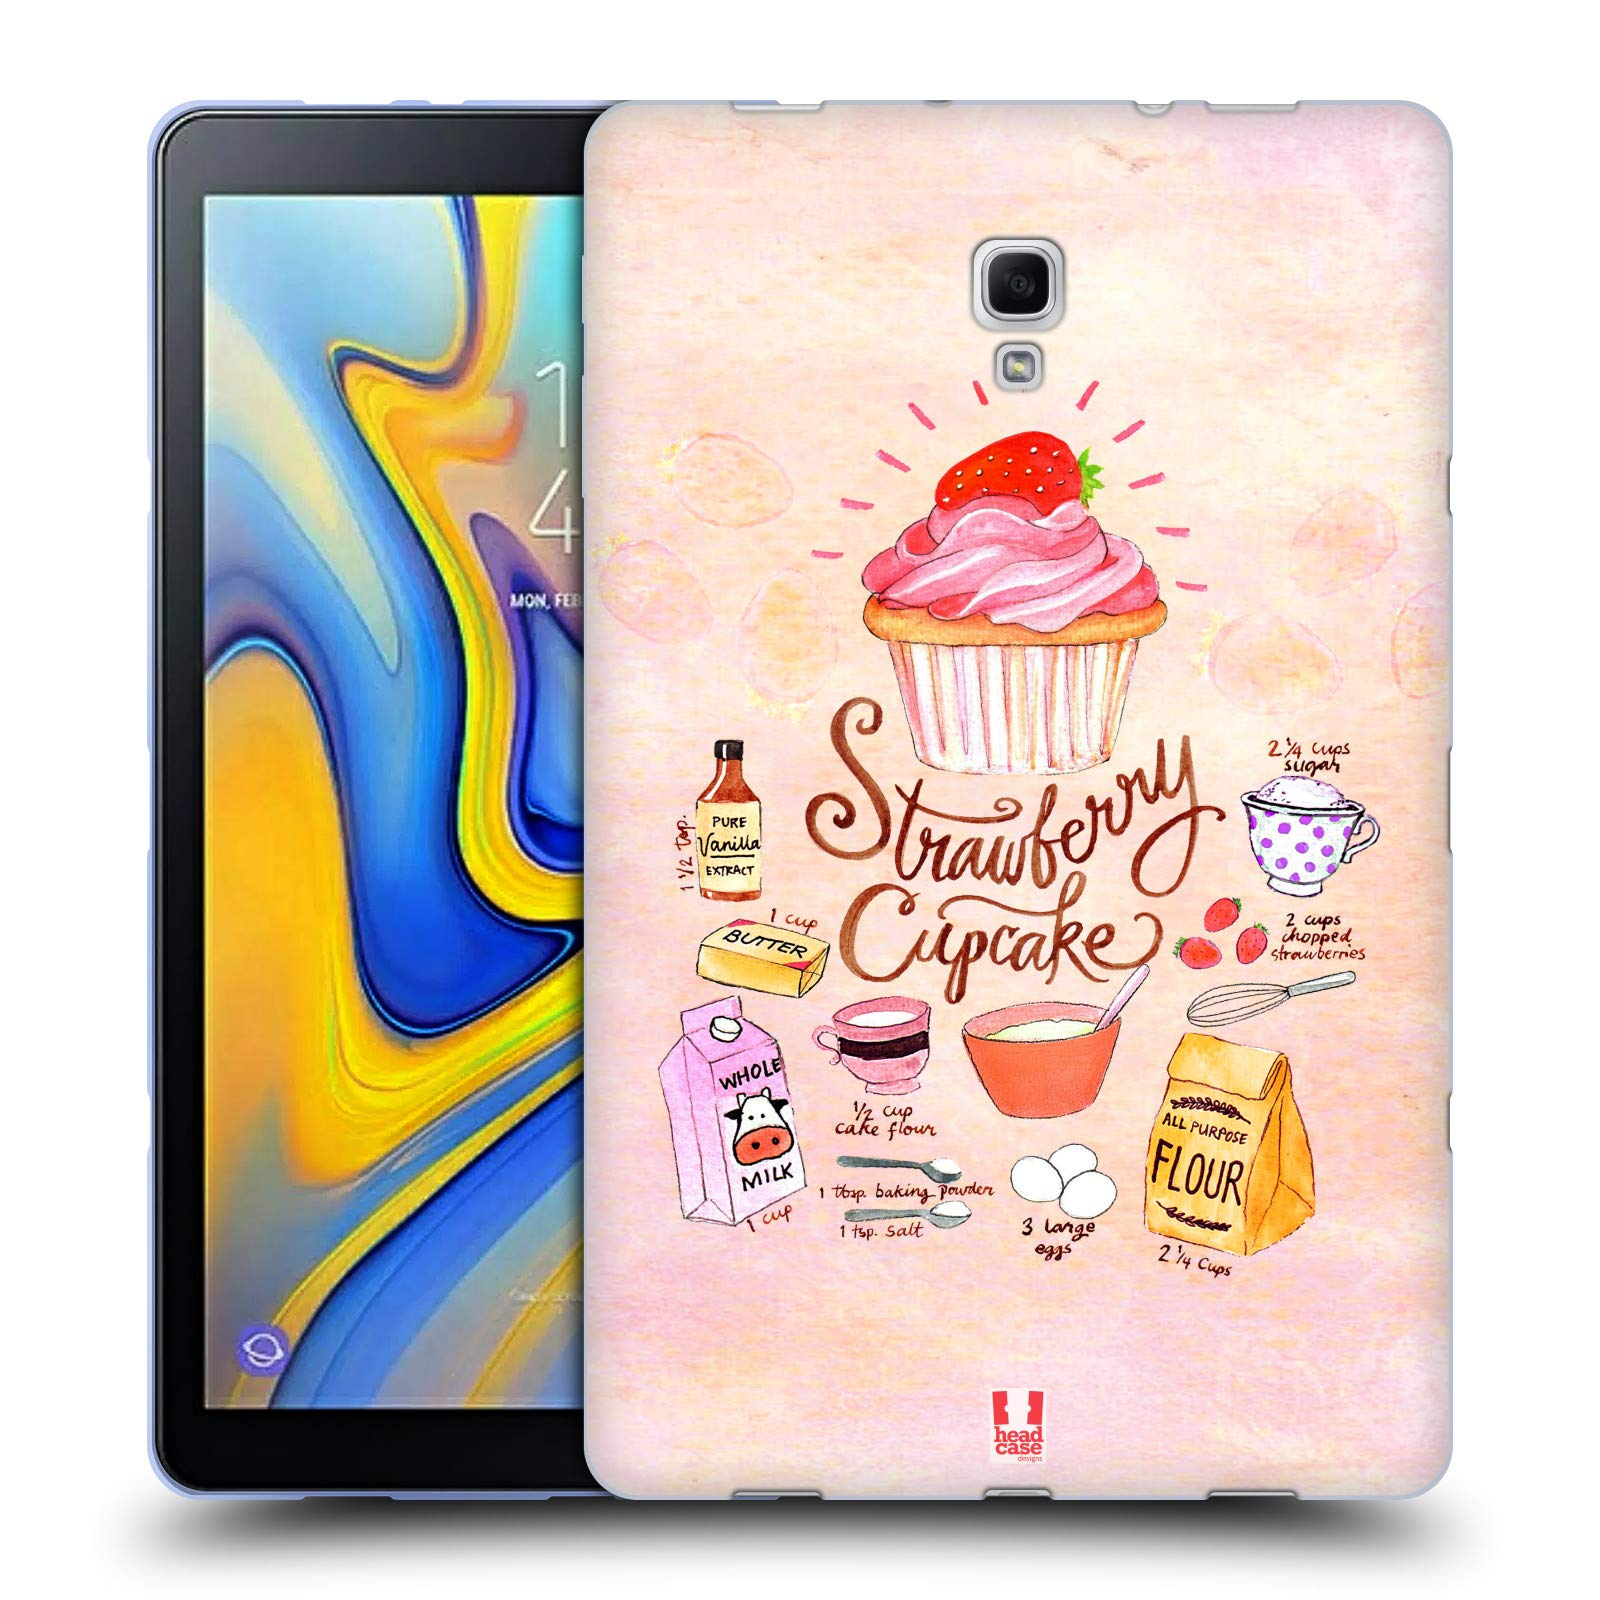 Head Case Designs Strawberry Cupcake Illustrated Recipes Soft Gel Case Compatible for Samsung Galaxy Tab A 10.5 (2018) by Head Case Designs